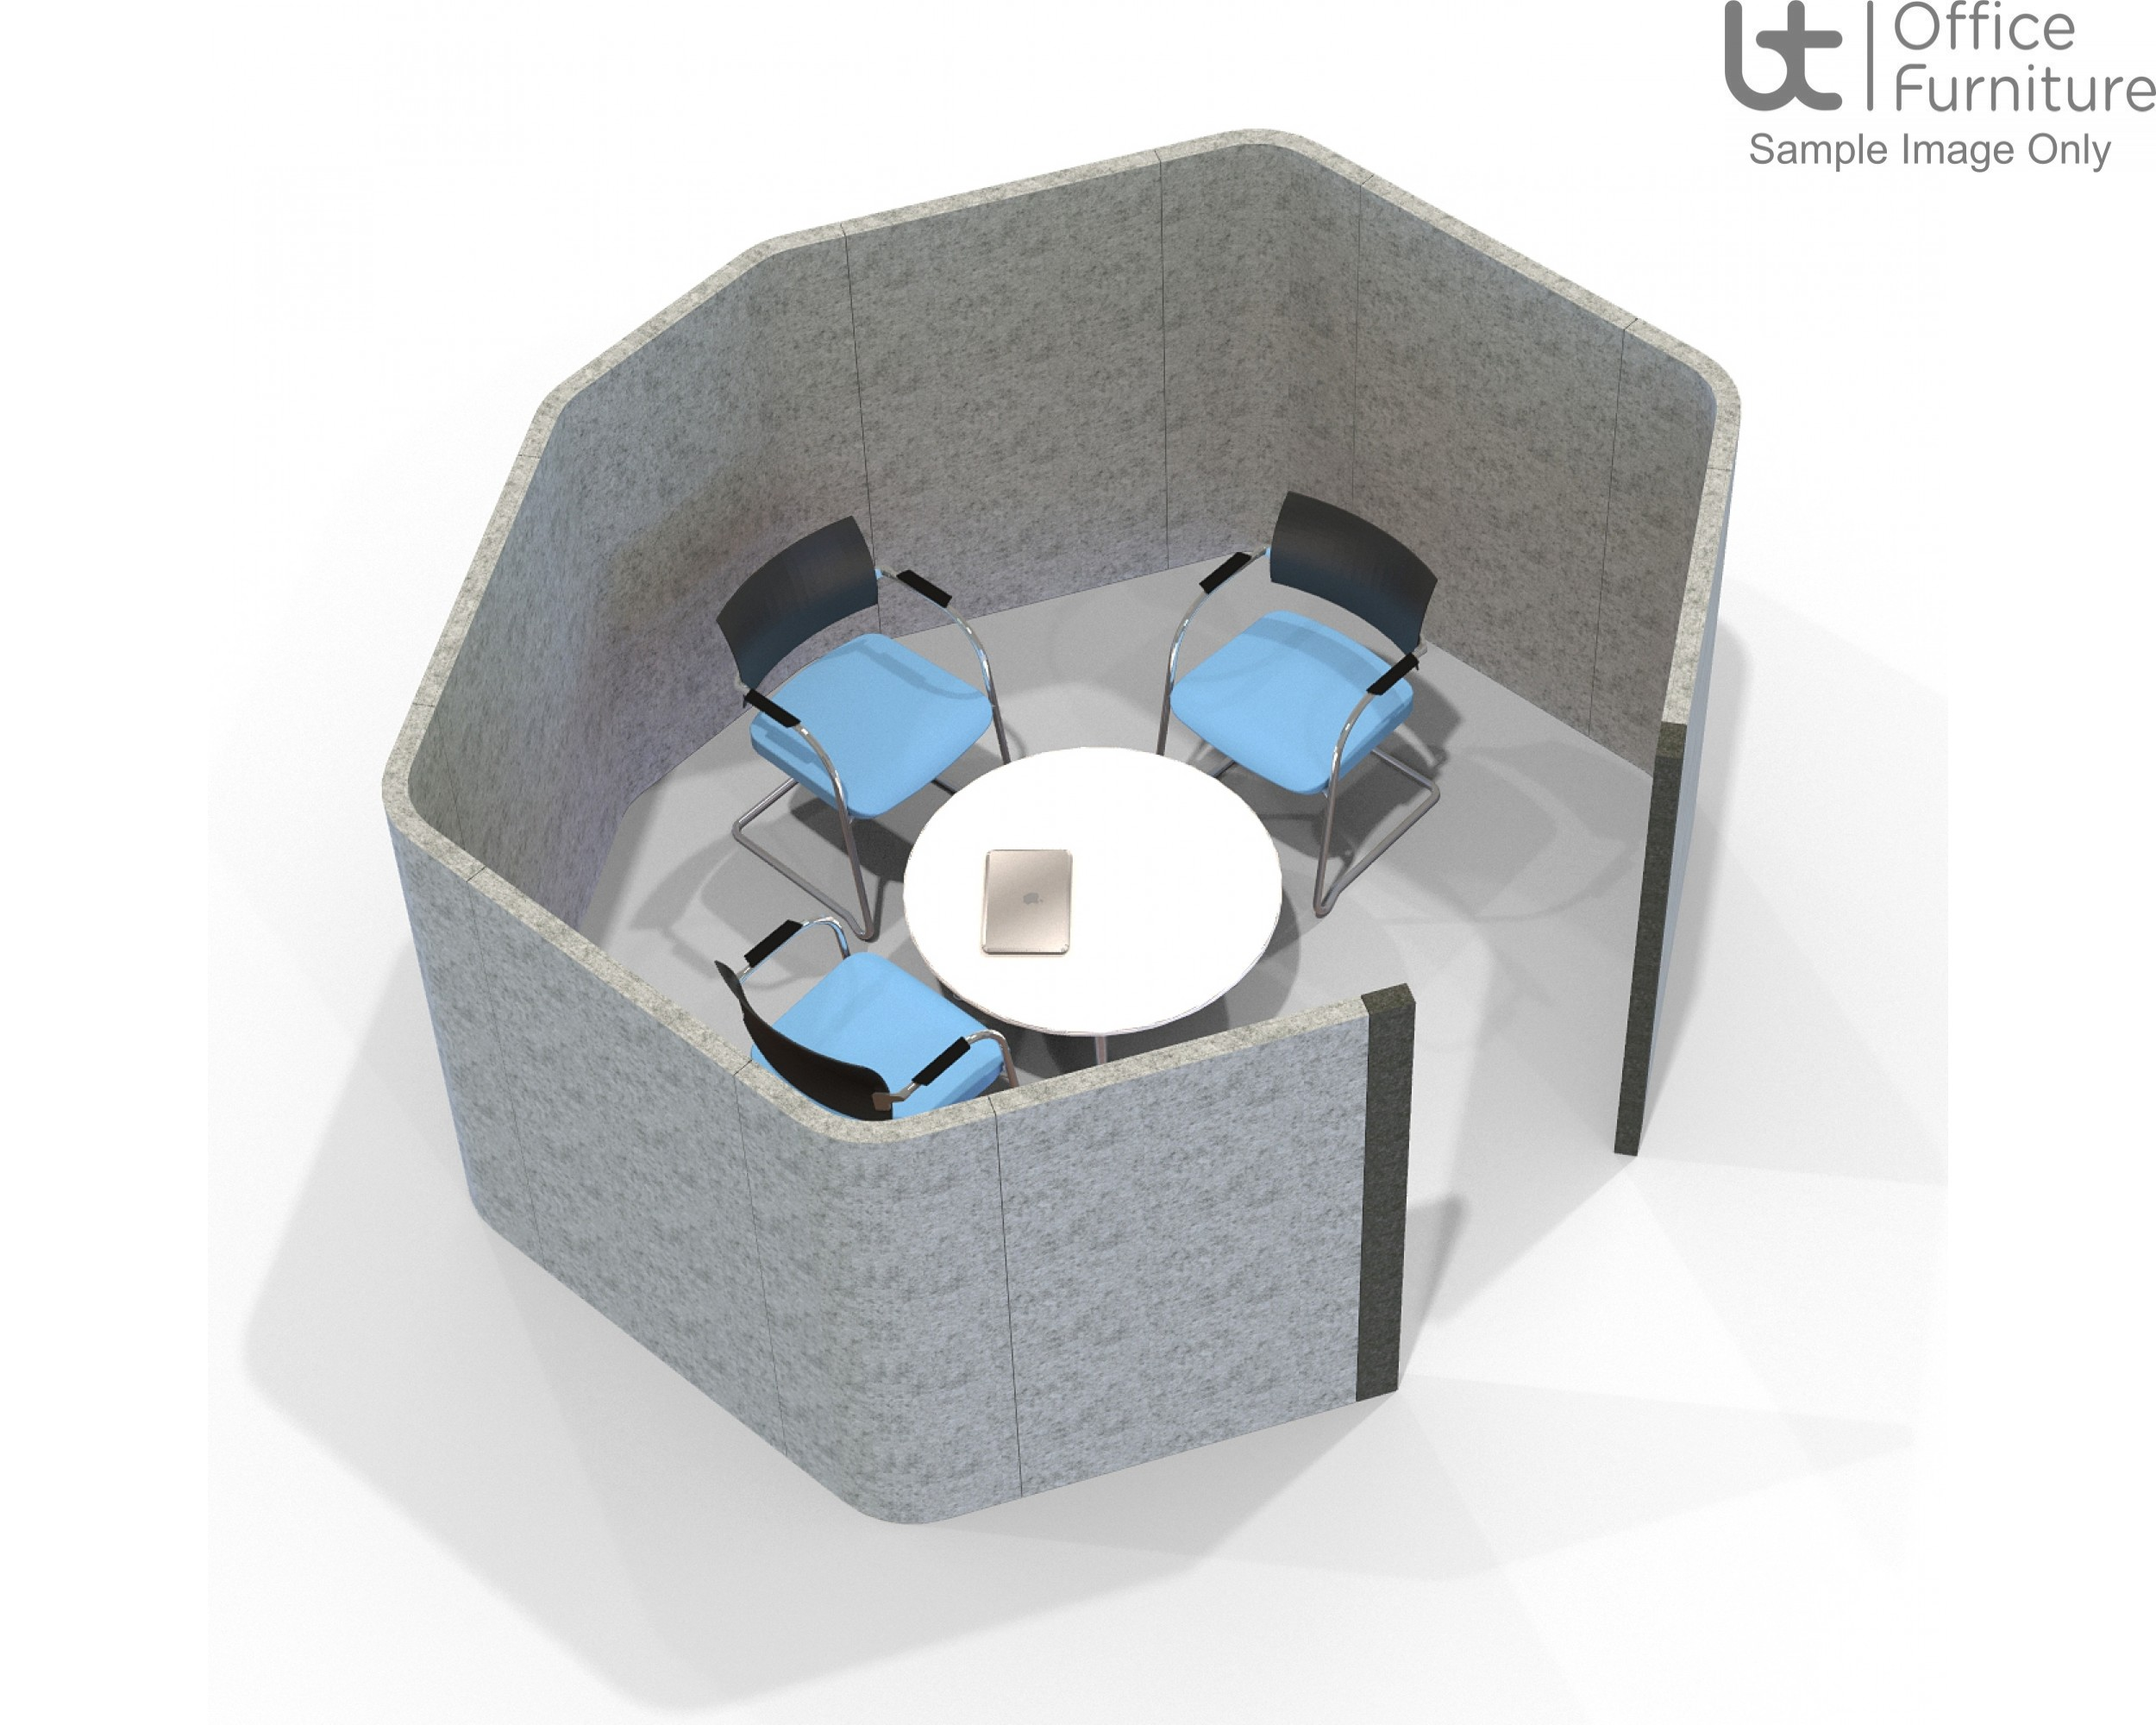 Acoustic Meeting - Octagonal  4 Person Meeting Room Booth Inc Table